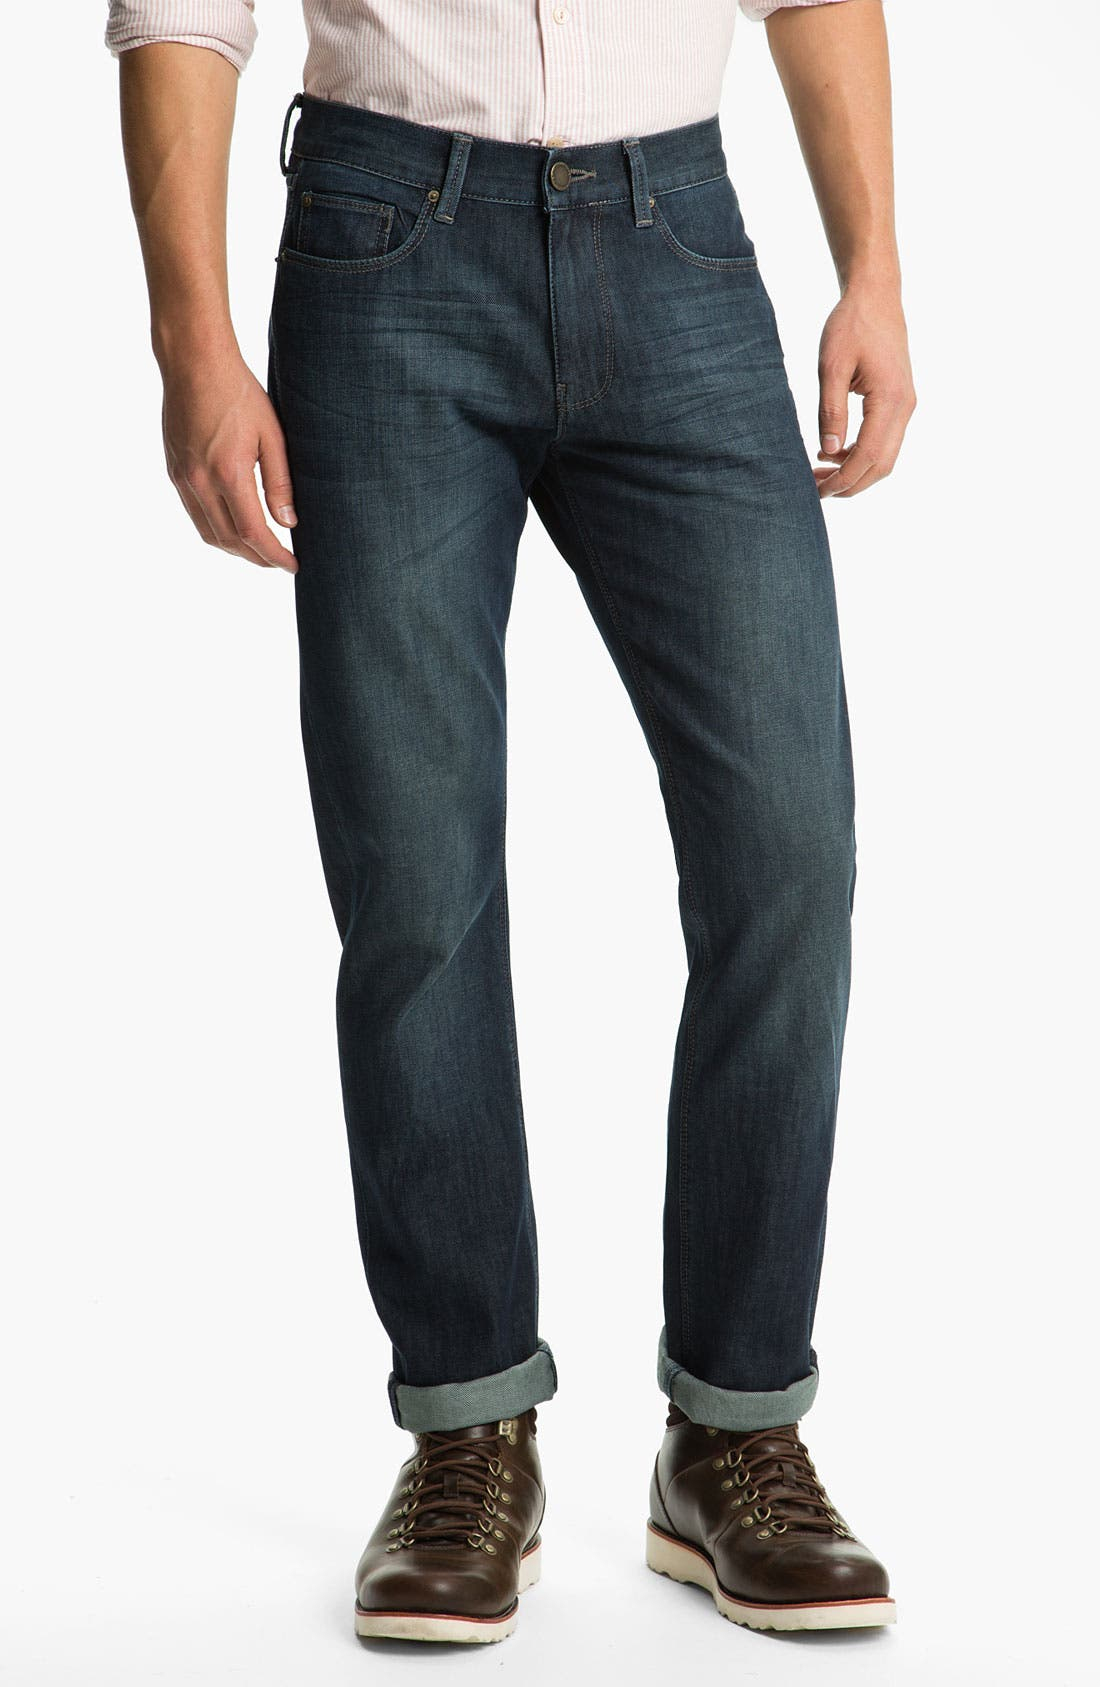 Alternate Image 1 Selected - DL1961 'Russell' Slim Straight Leg Jeans (Mustang)